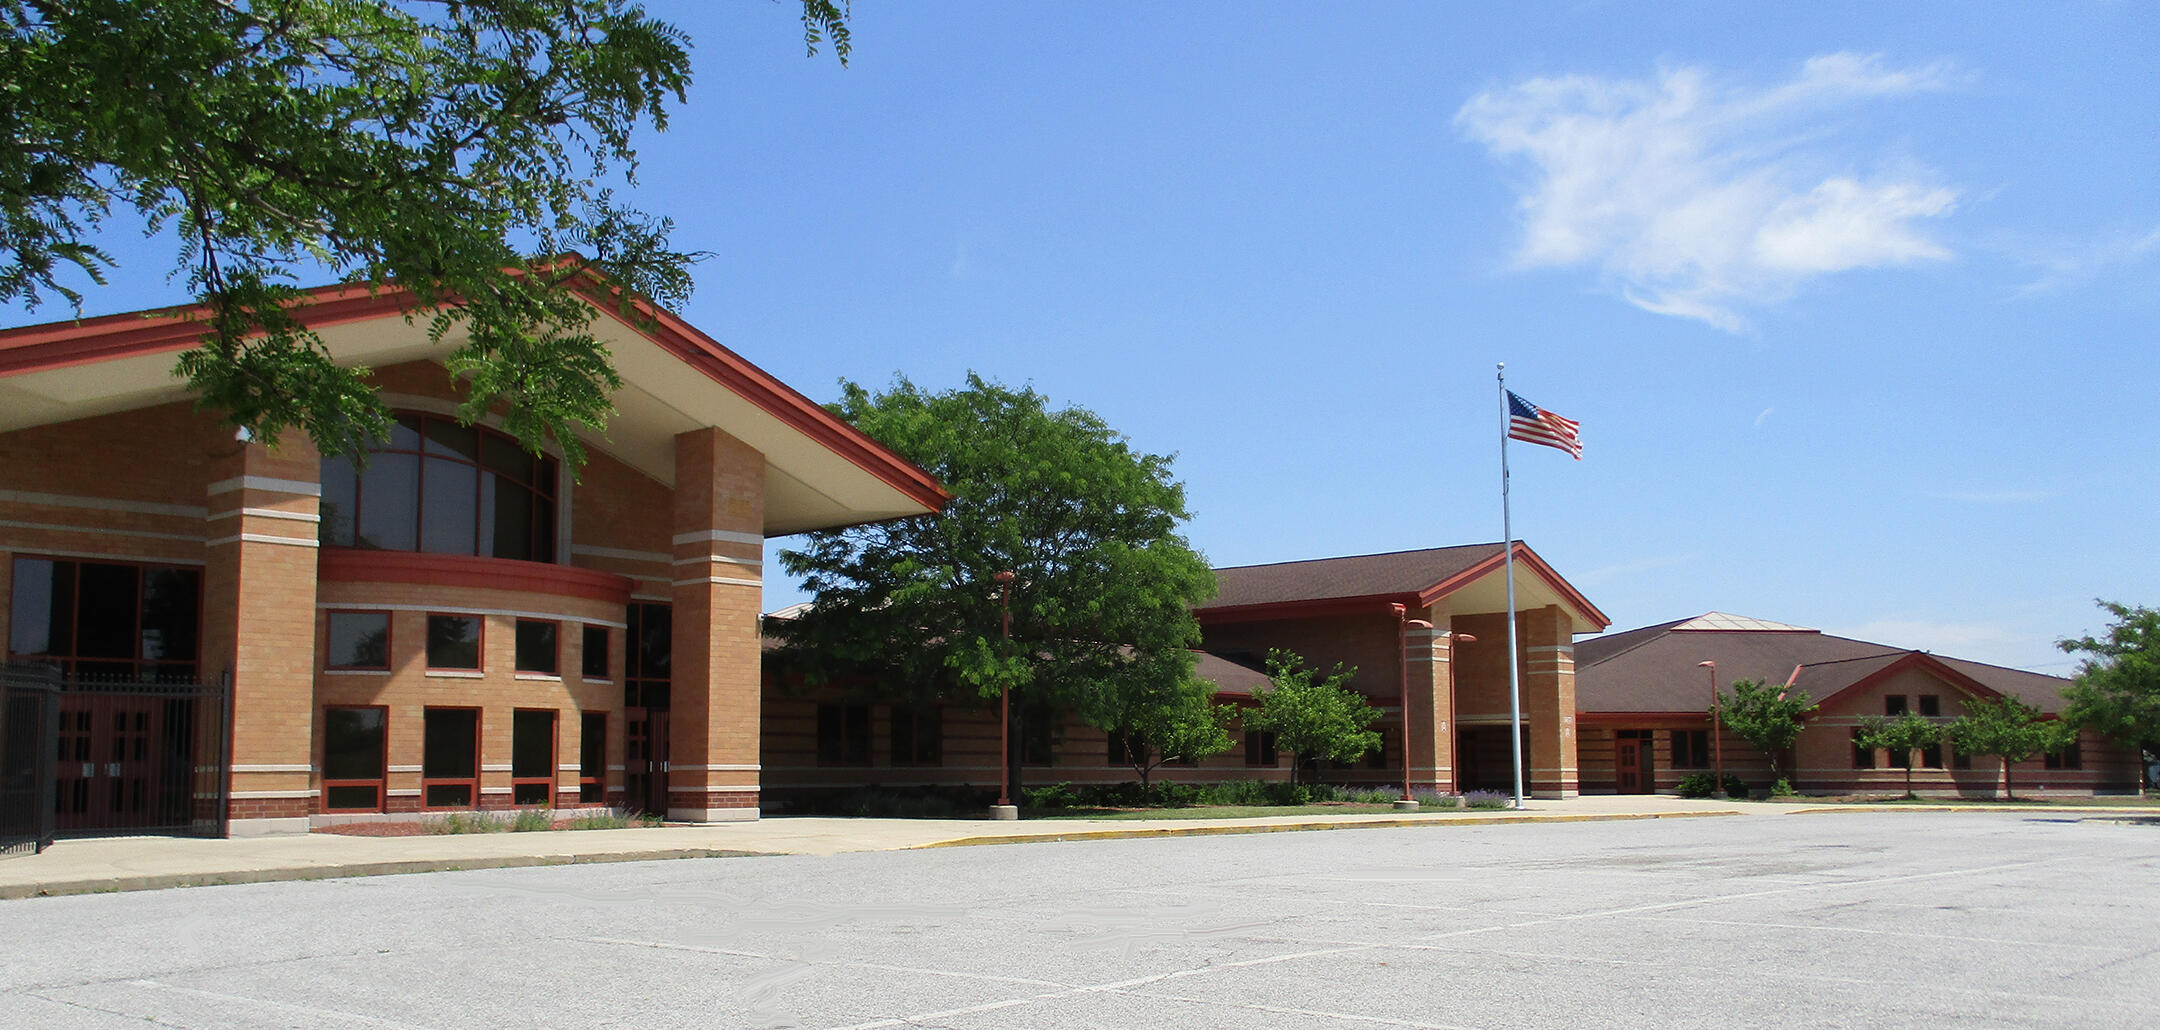 Harding Elementary. School Front View